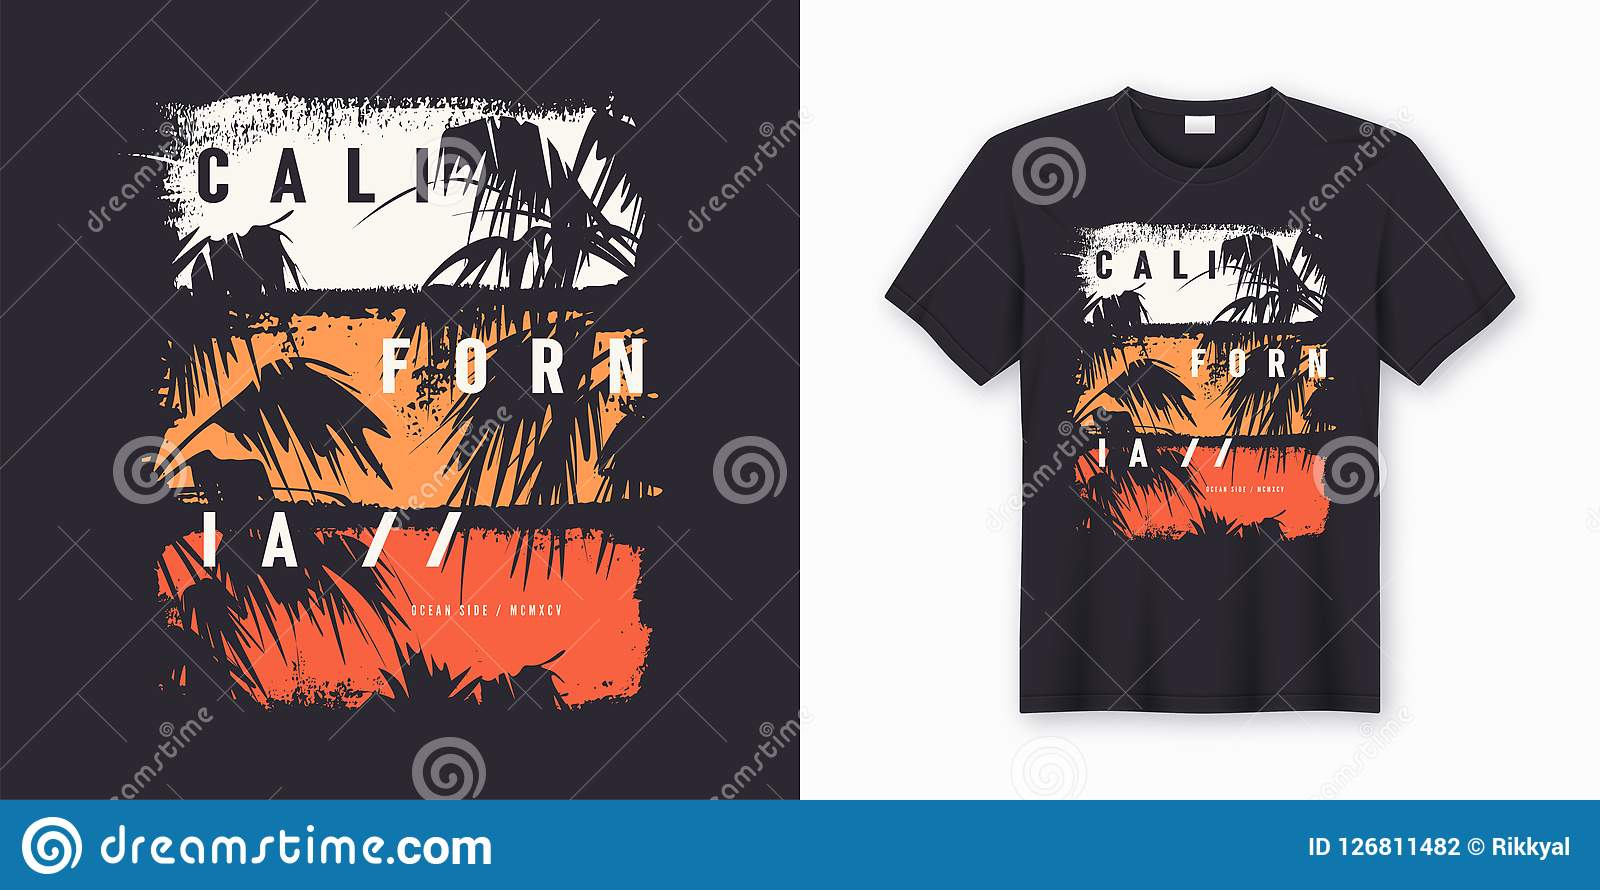 b262199a1 California Ocean side stylish t-shirt and apparel trendy design with palm  trees silhouettes, typography, print, vector illustration. Global swatches.